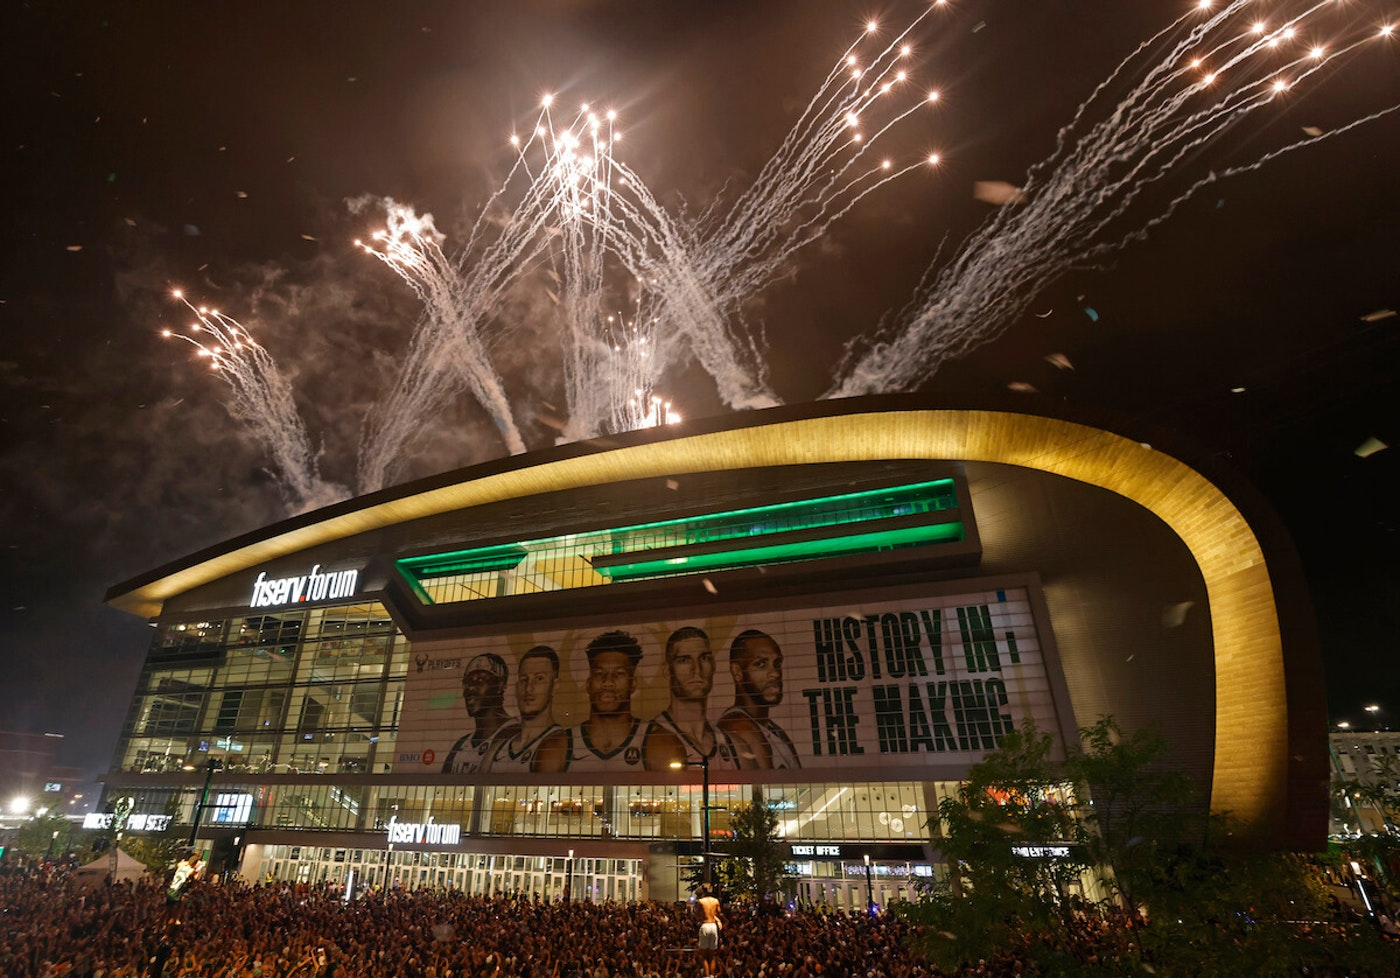 Fireworks explode over Fiserv Forum after the Milwaukee Bucks defeated the Phoenix Suns in Game 6 of the NBA Finals to win the NBA Championship early Tuesday, July 20, 2021, in Milwaukee. (AP Photo/Jeffrey Phelps)